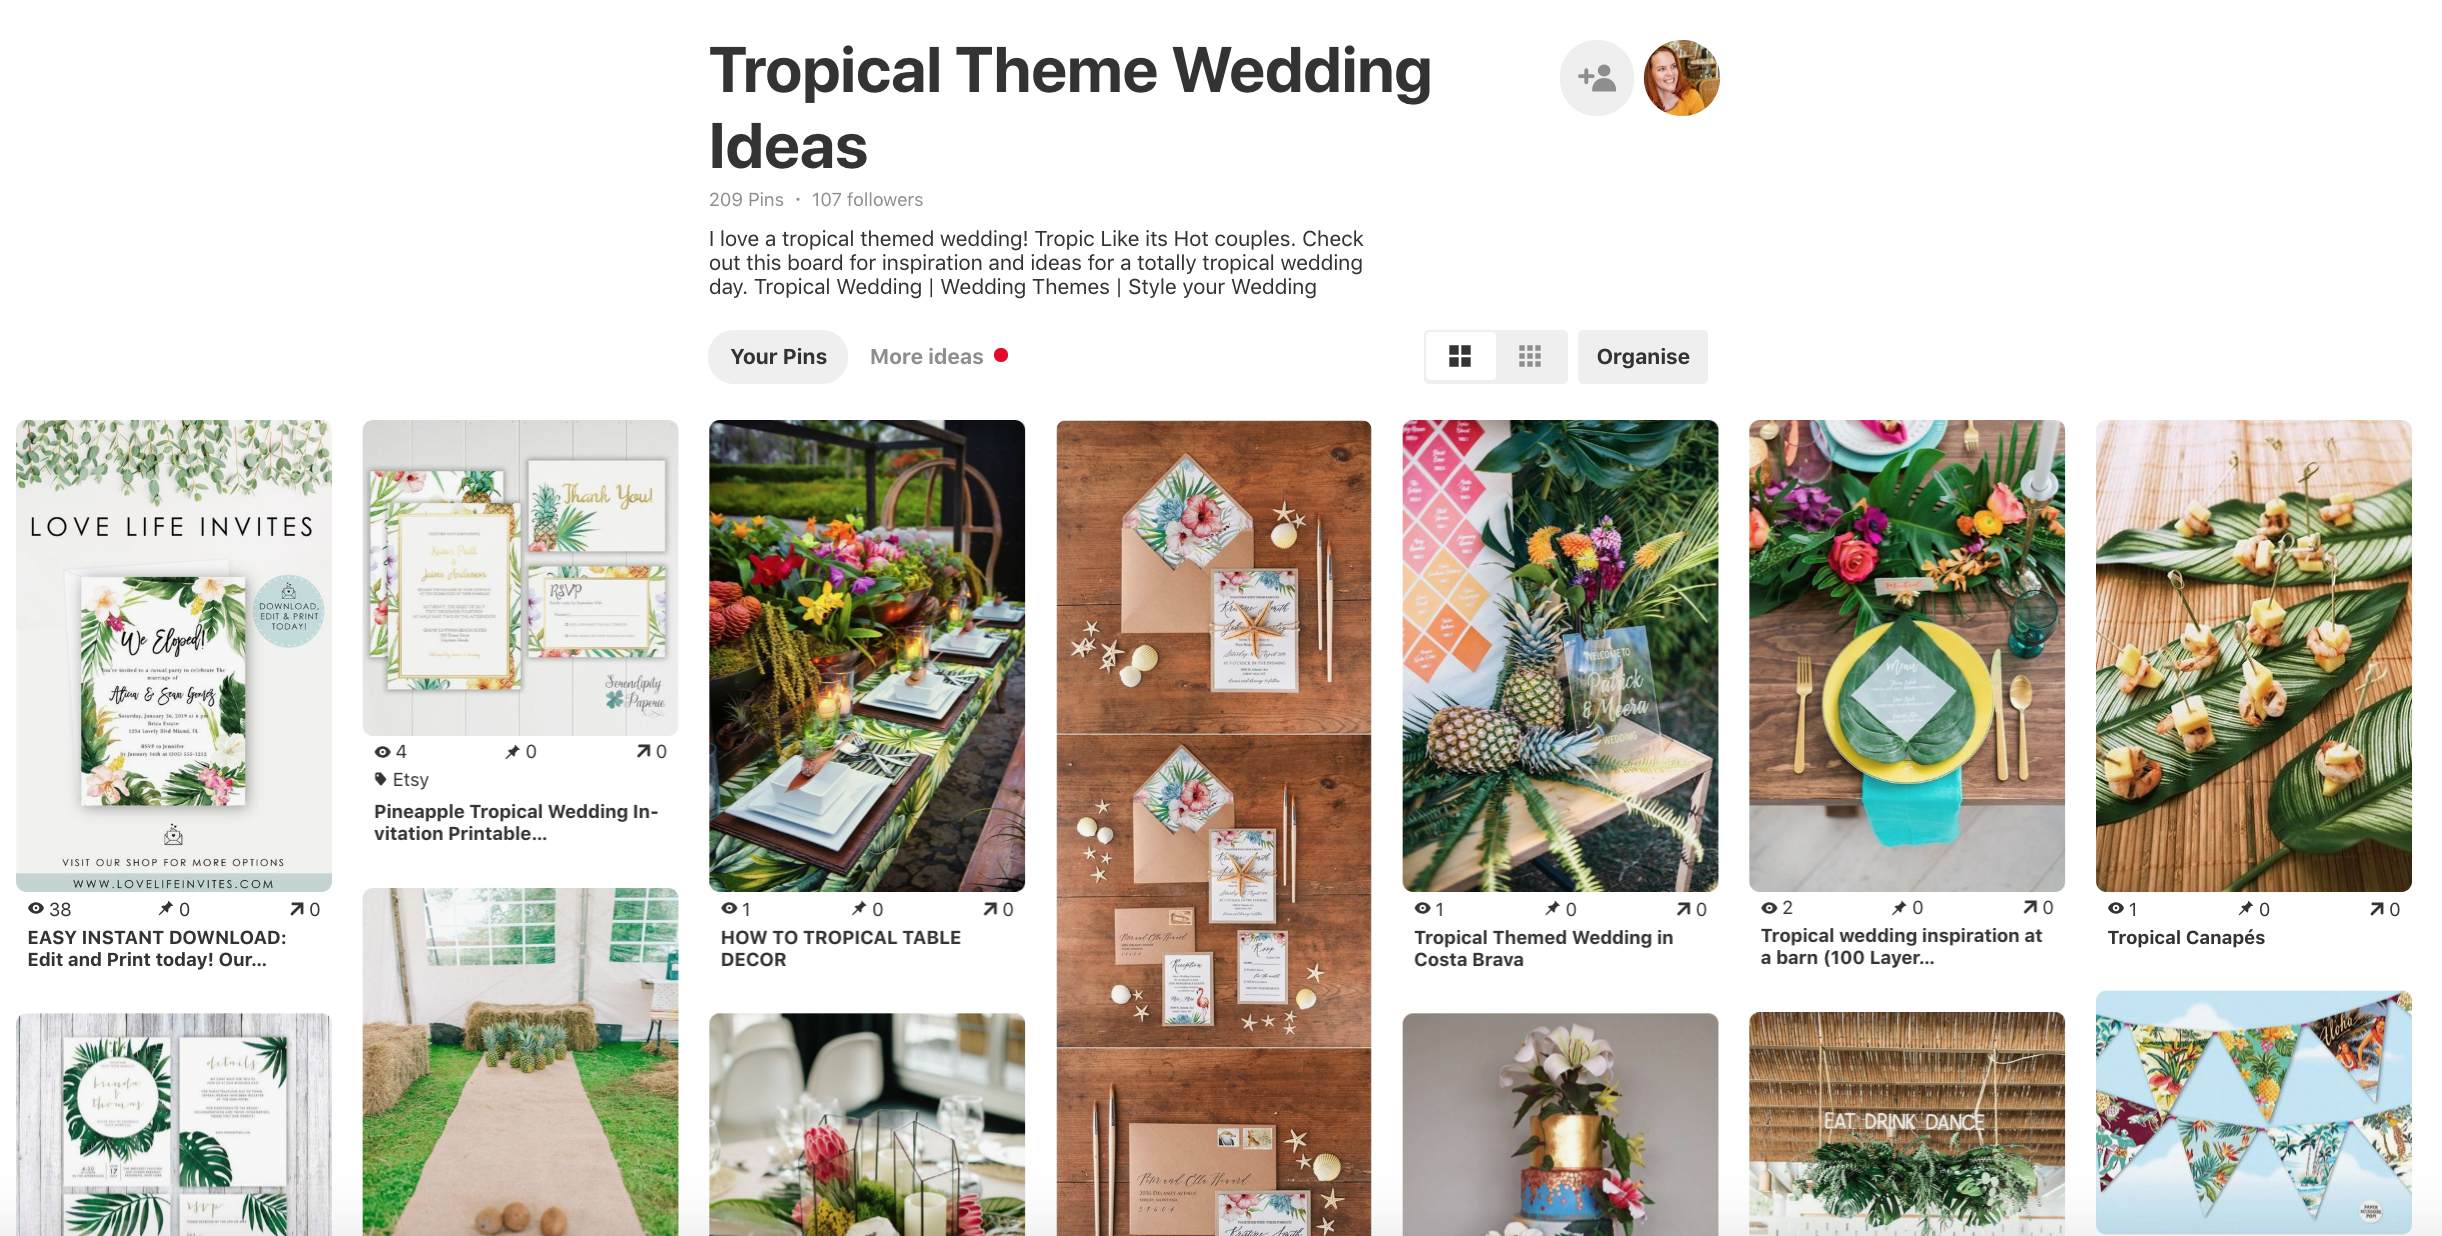 Pinterest board tropical themed wedding ideas from Parrot & Pineapple. How to use pinterest to plan your wedding.